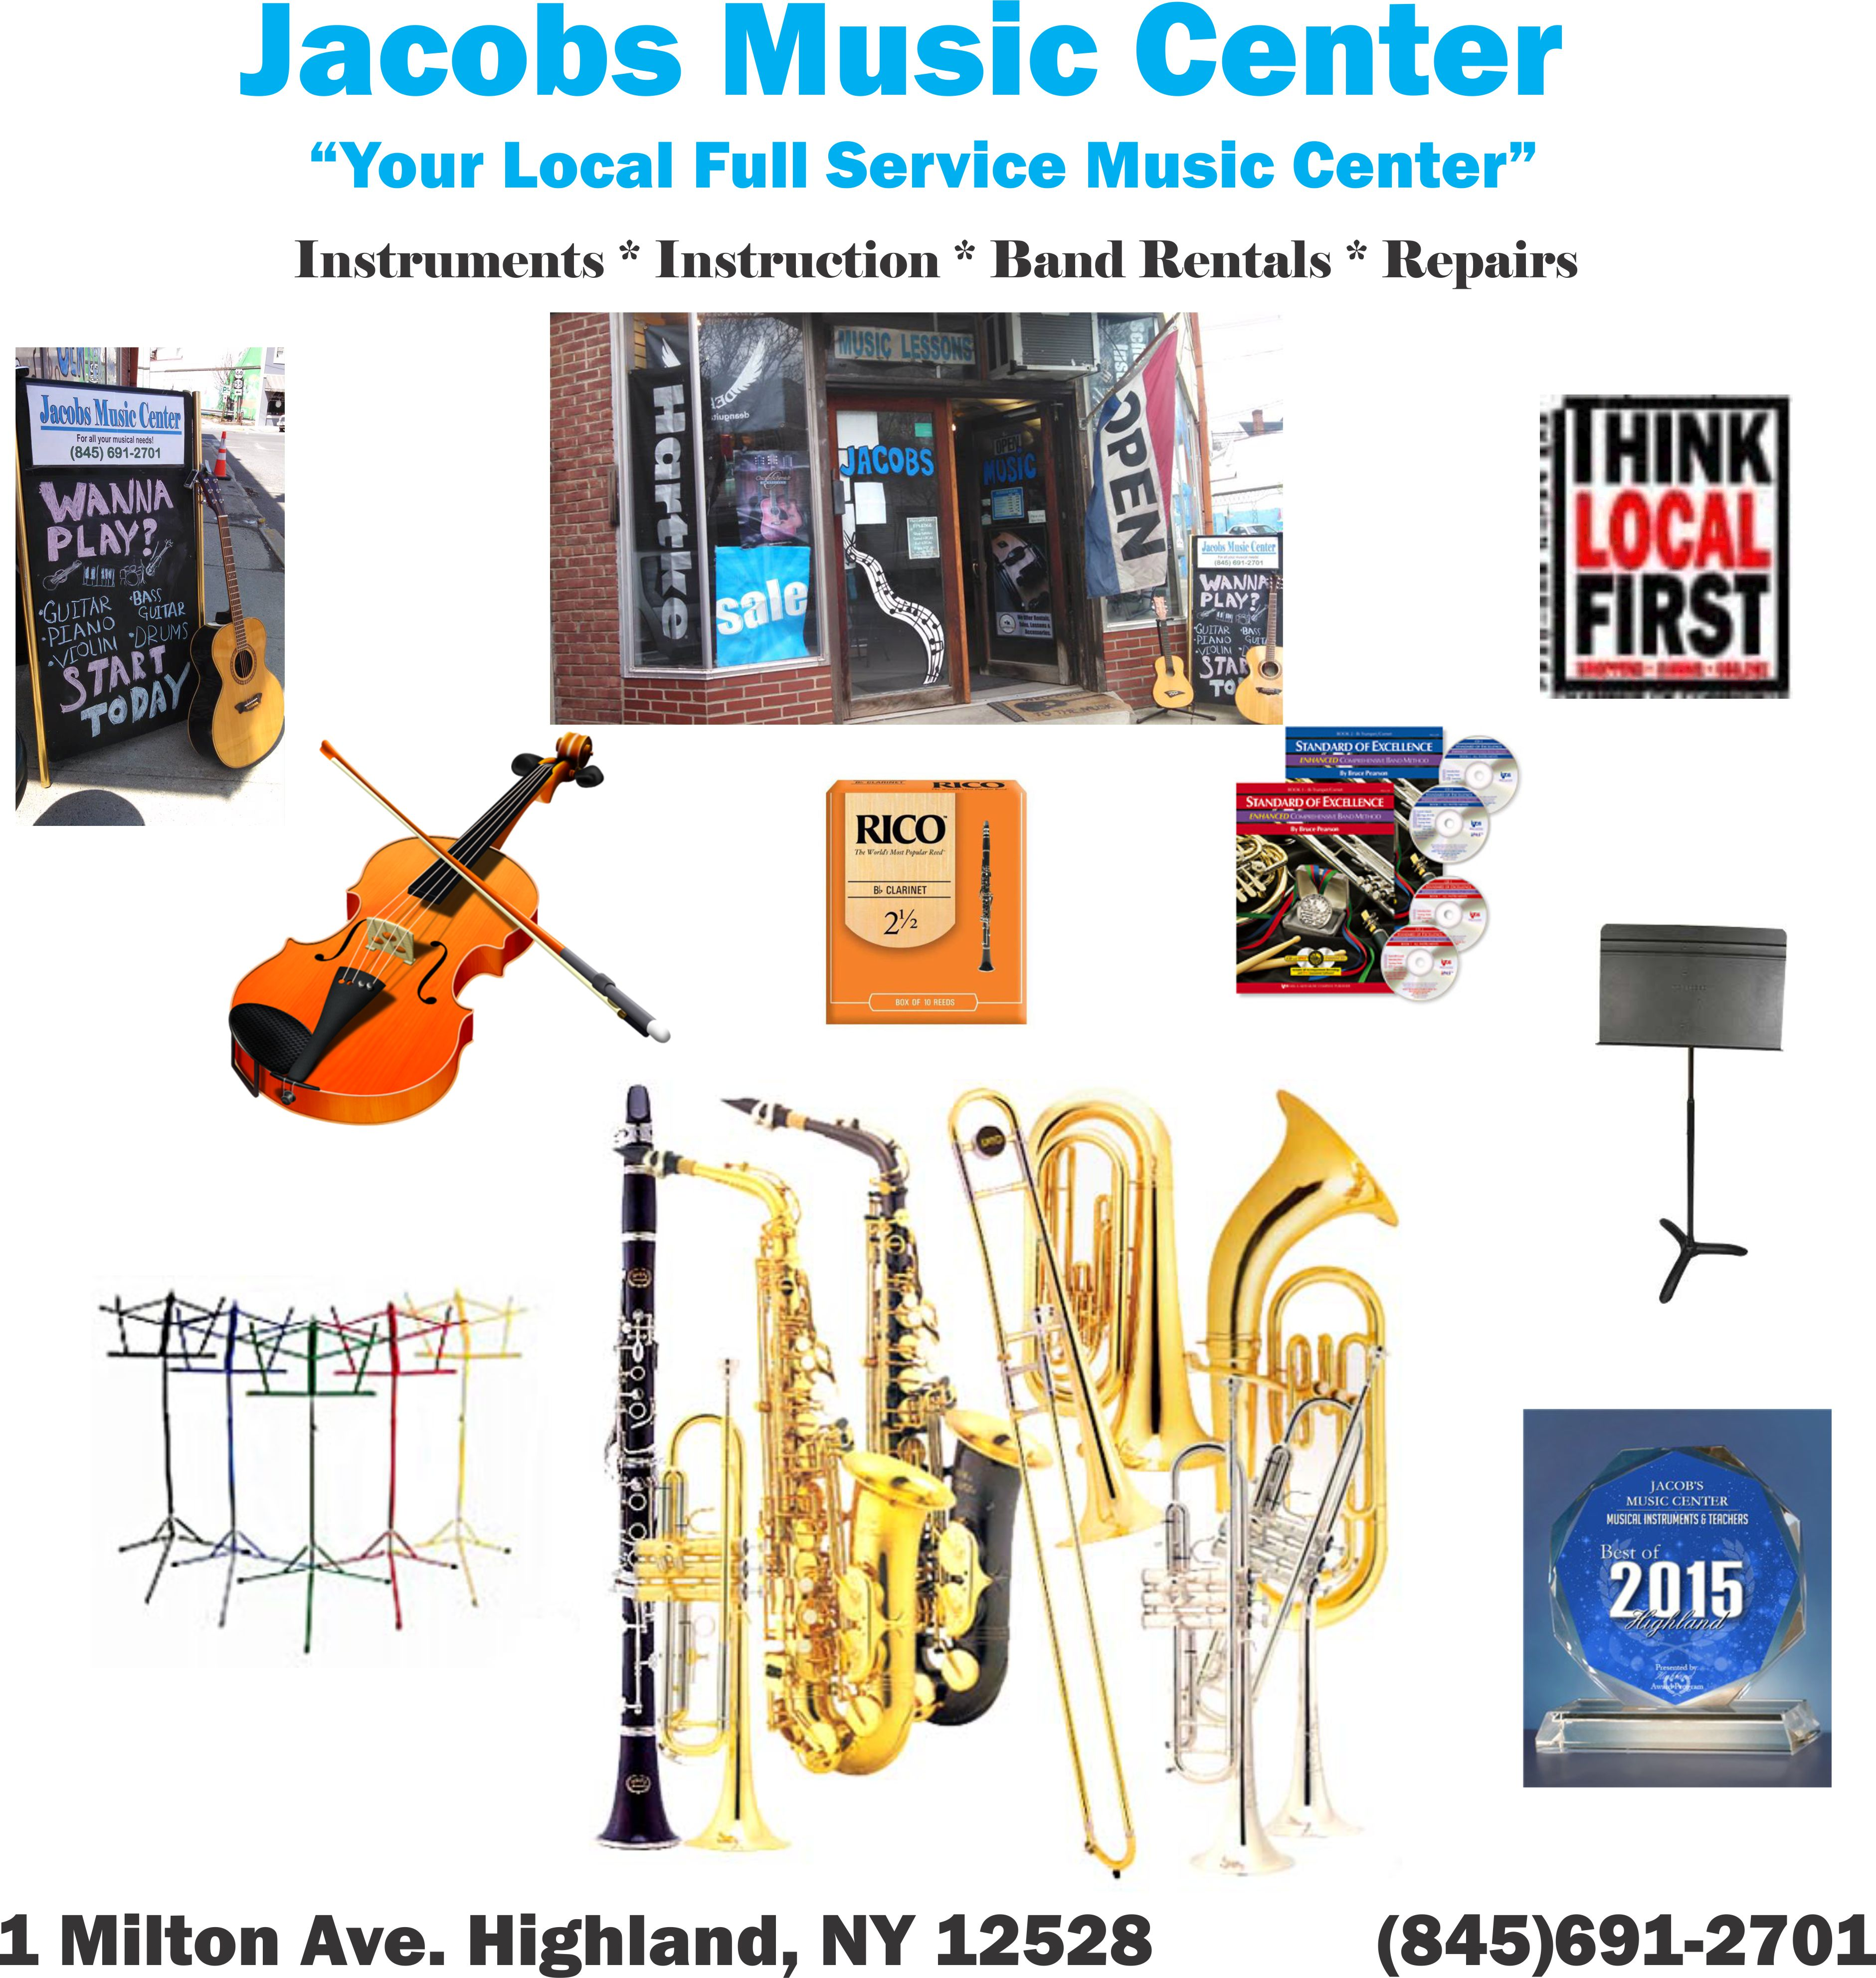 Jacobs Music Center image 11